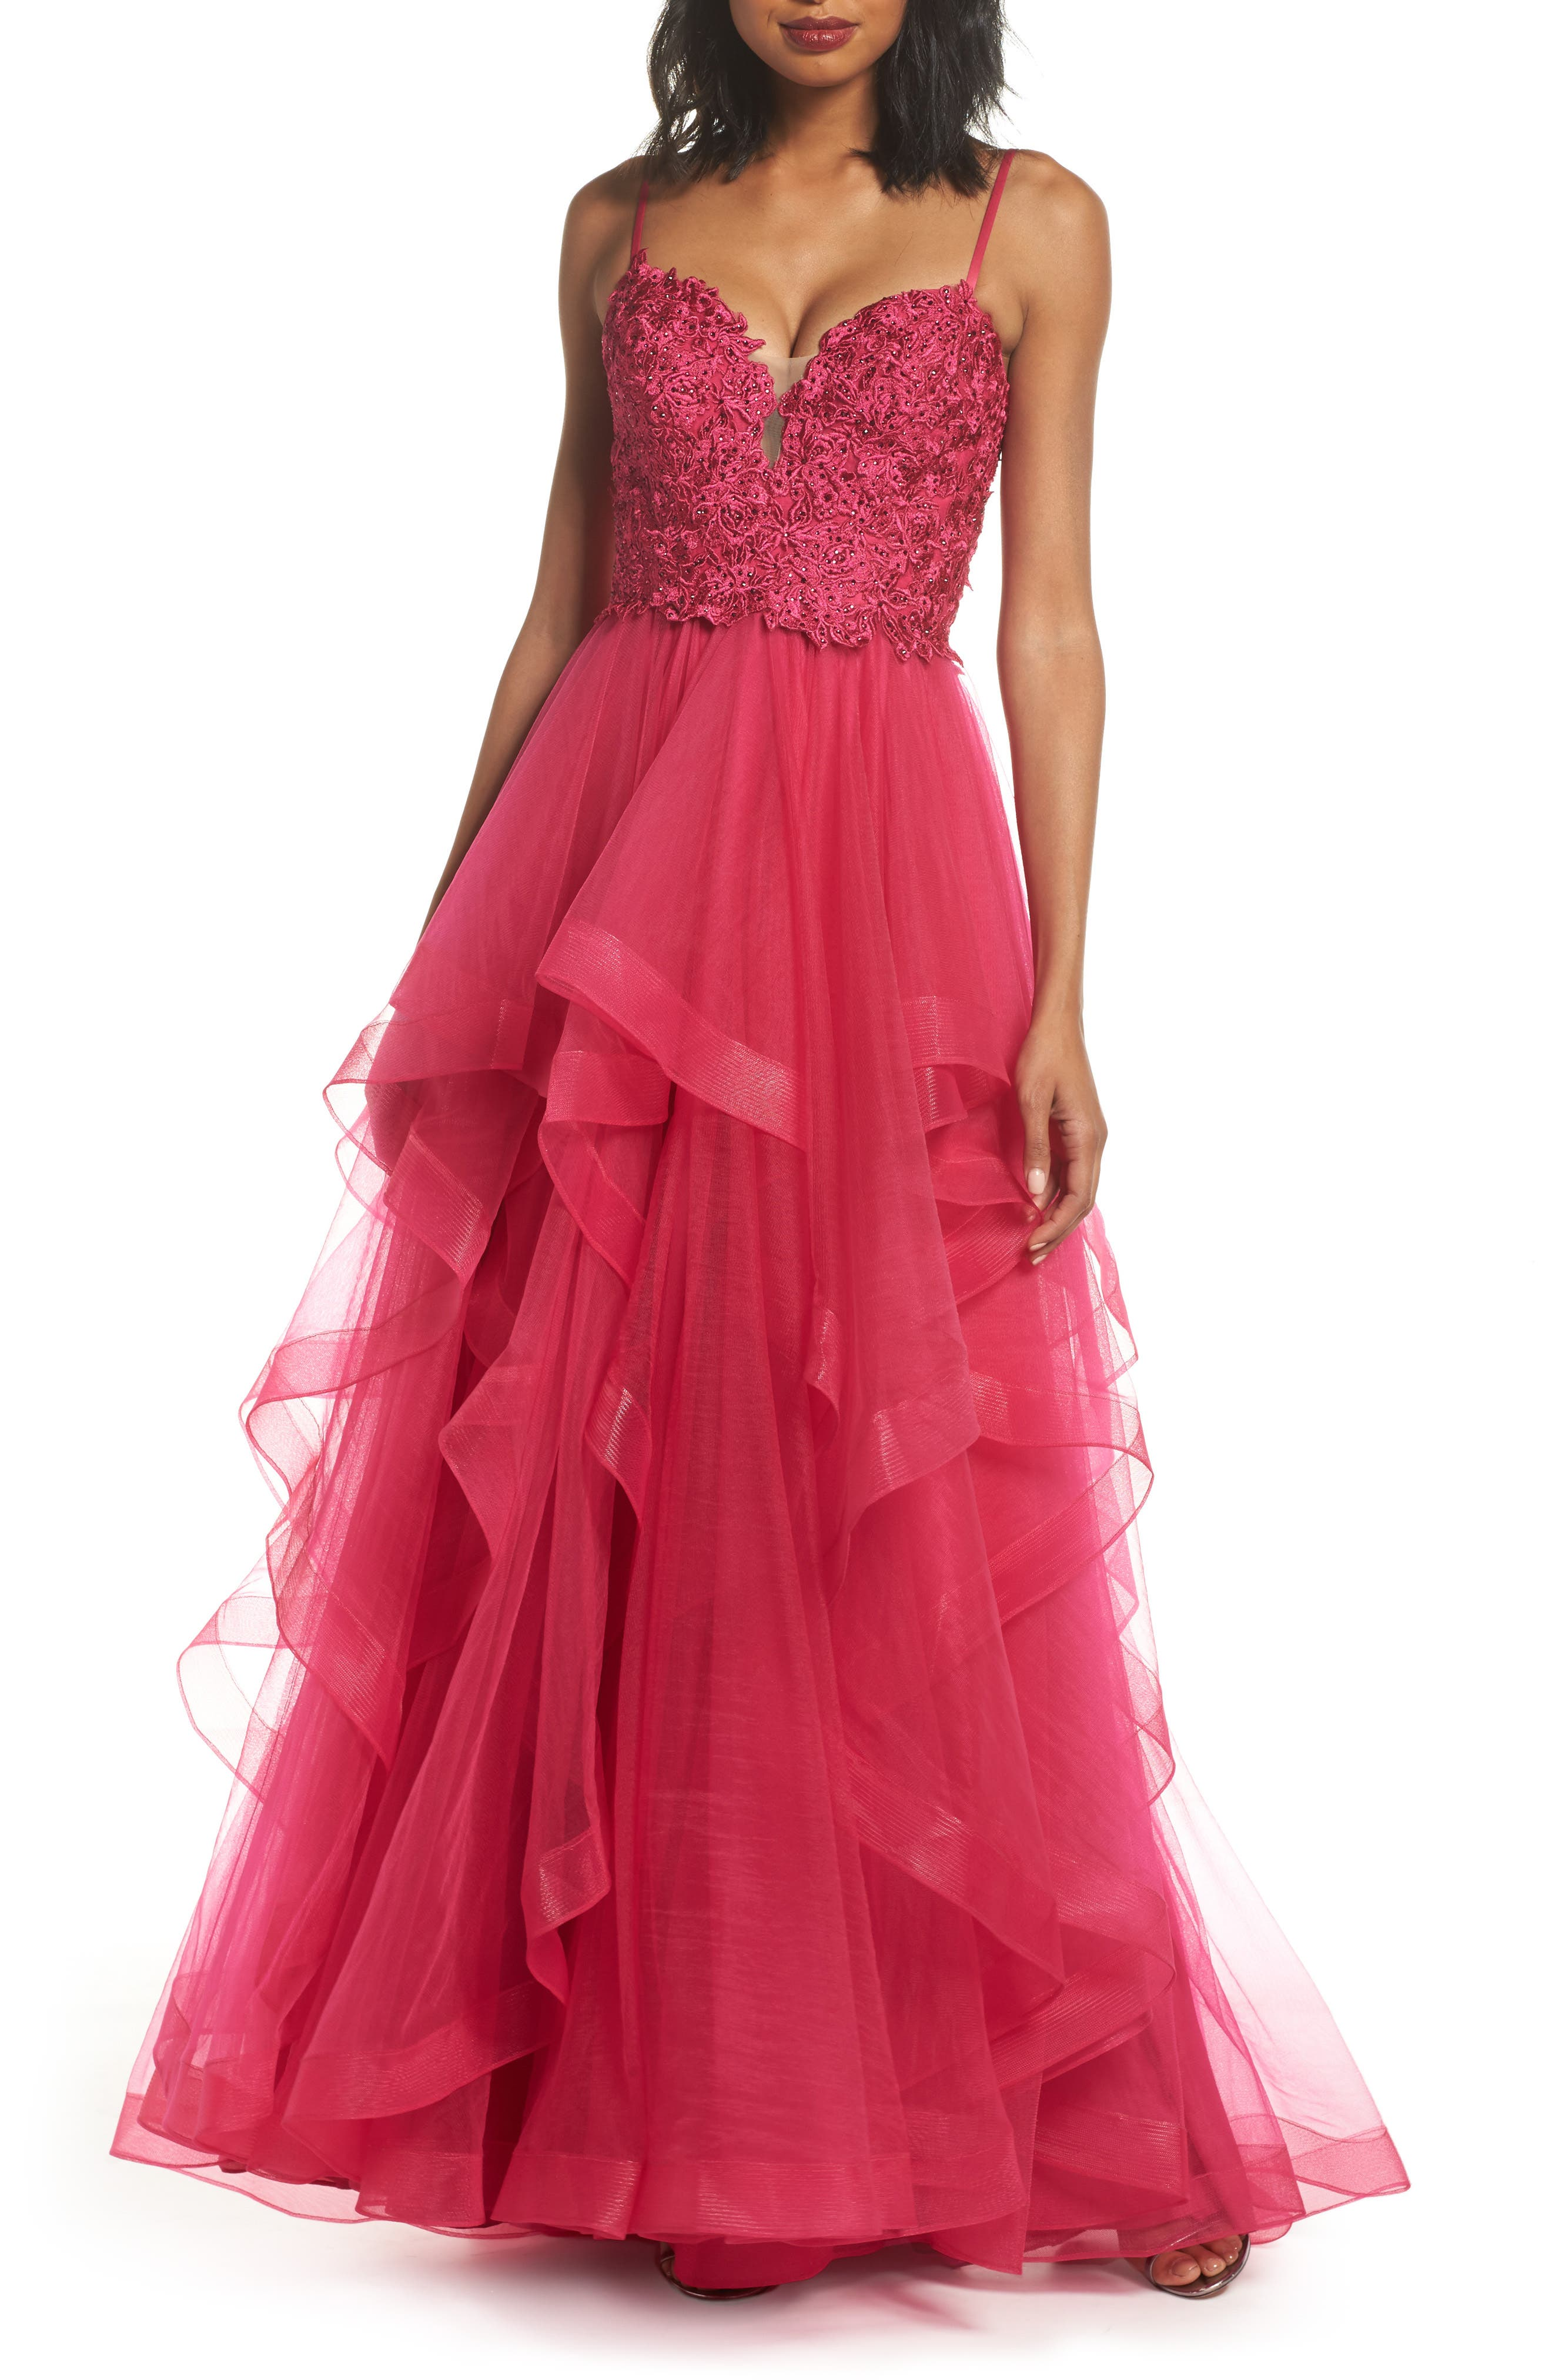 La Femme Lace & Tiered Tulle Ballgown, Pink